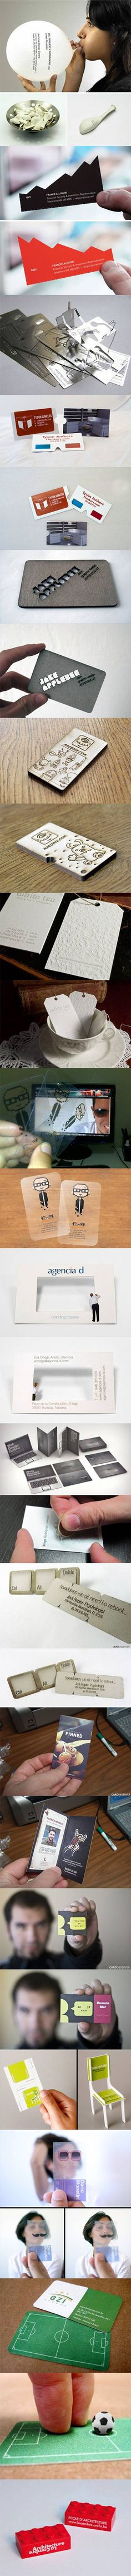 Let's face it, most business cards don't usually stick around for long, as most…